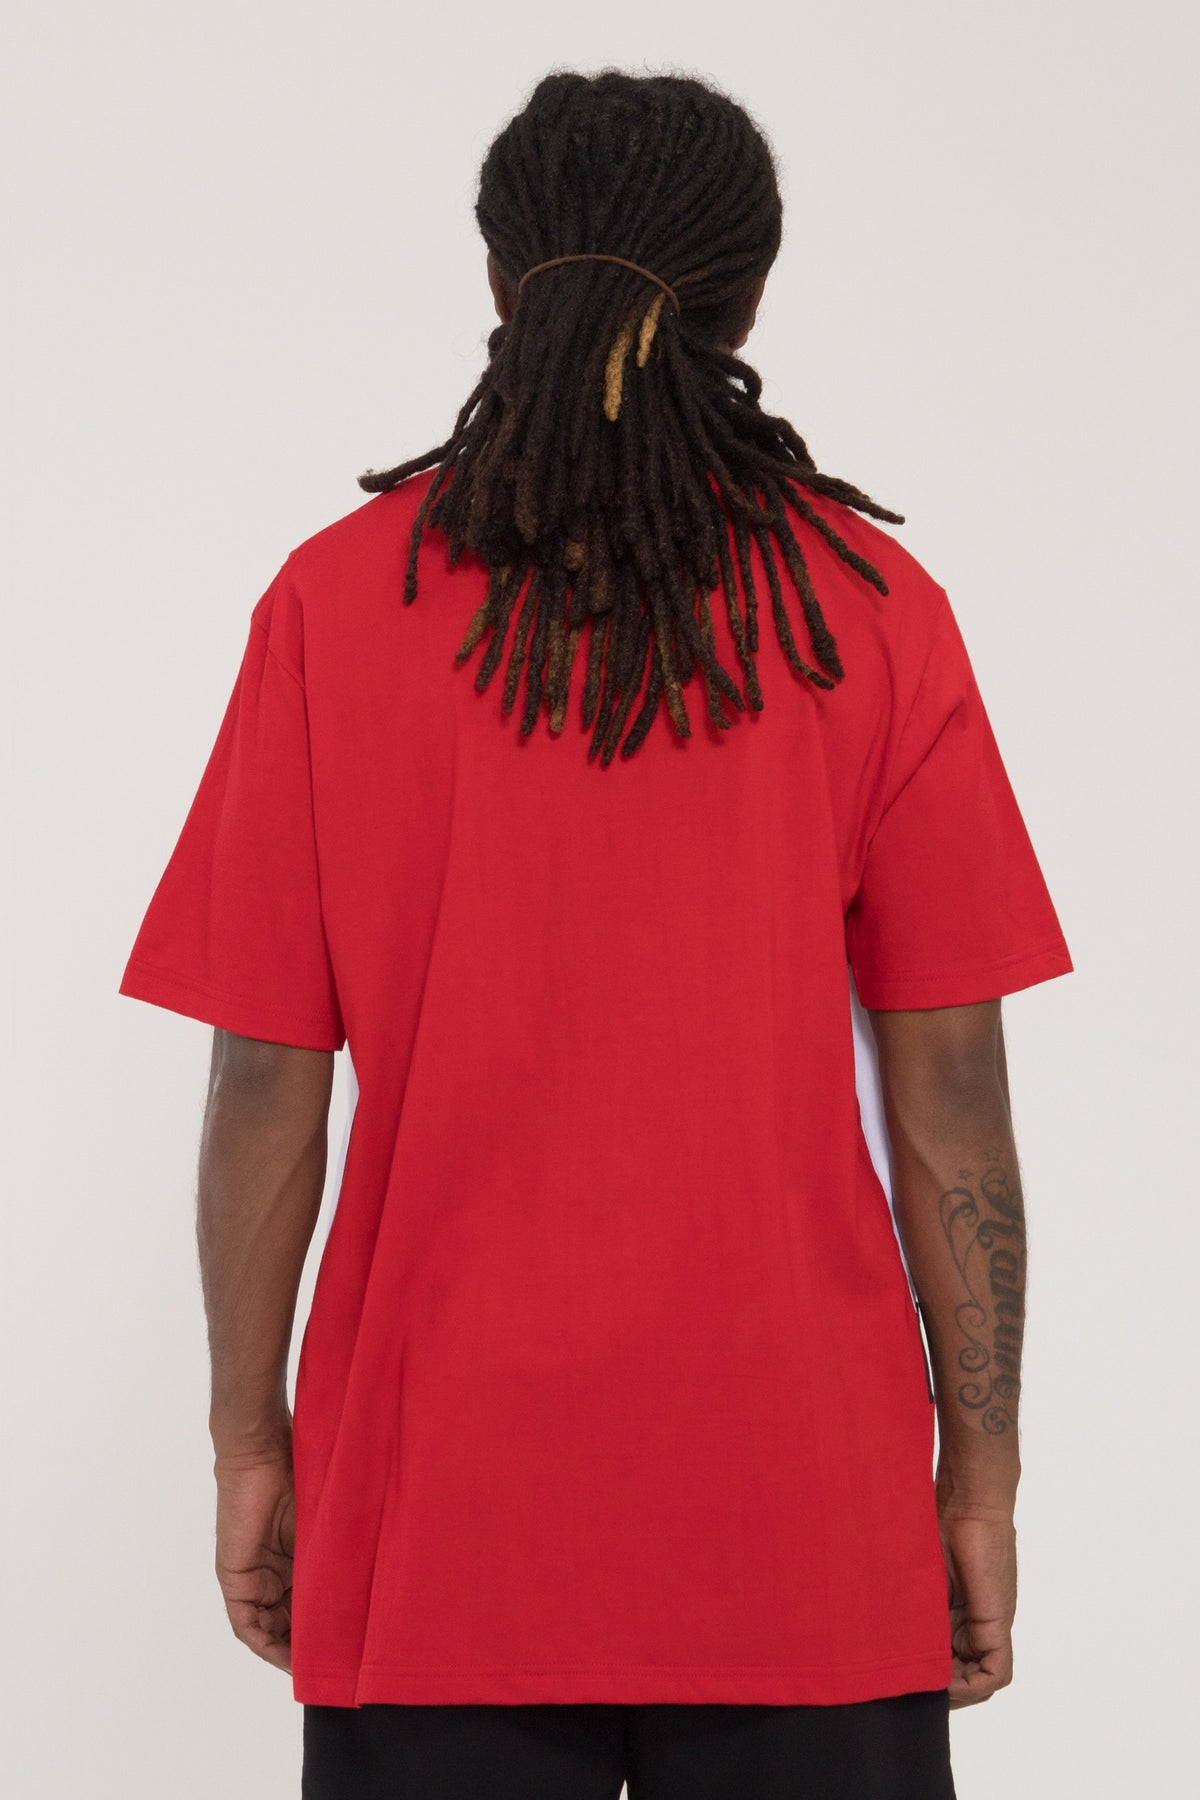 Panel Tee - Red/Navy/White